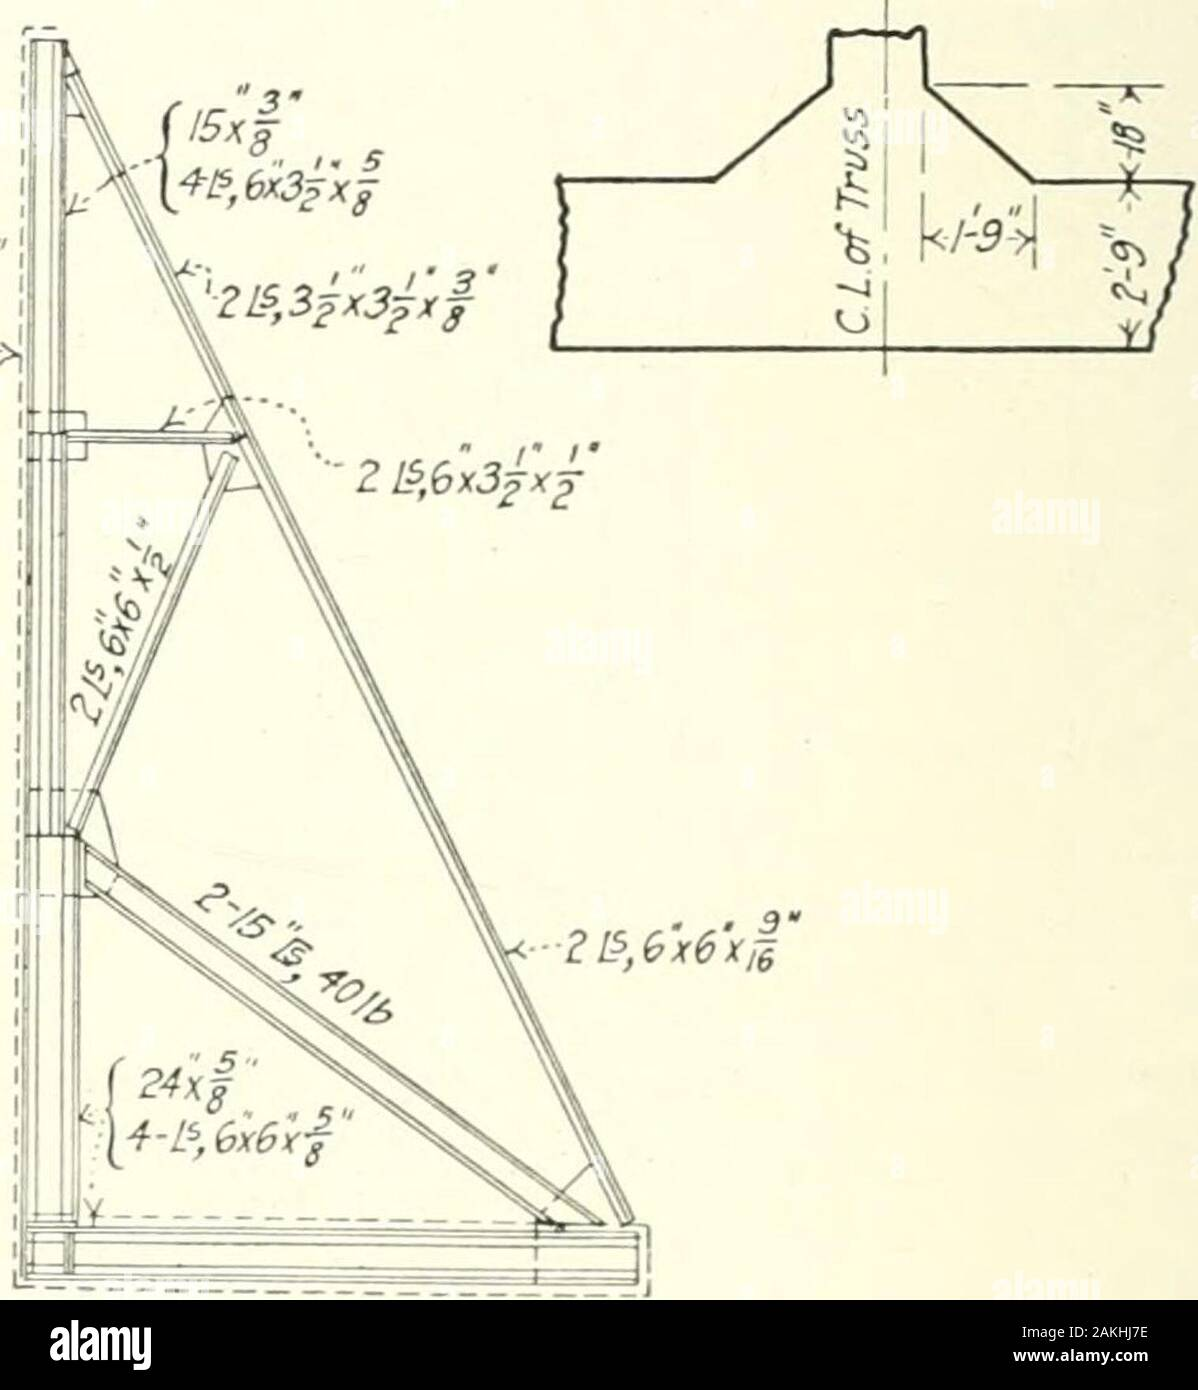 """Retaining walls; their design and construction . 4-l^,6x6x^. Fig. 58.—Counterfort wall. The design of the counterfort proper (note that a final chock of the dimen-sions just found is omitted—^in actual practice such omission is poor design)is most conveniently made by graphical methods. The skeleton outlineof the truss is shown in Fig. 58. The loads at the i)aiu!l points .4, B, C are,allowing for the ten foot spacing of counterforts: -3 1.83 X 16 , 5 X 16   ^o i a ^ Ti H n — ?^o 2X K 65.5 X 16 1.83 X 16 2 X ^ ^ 2 ? X 16 = 112 12.5 X 15 , 5.5 X 15 , 7 X 16 , 2 X 5.5 X 16 ,"""", The stress polygon Stock Photo"""